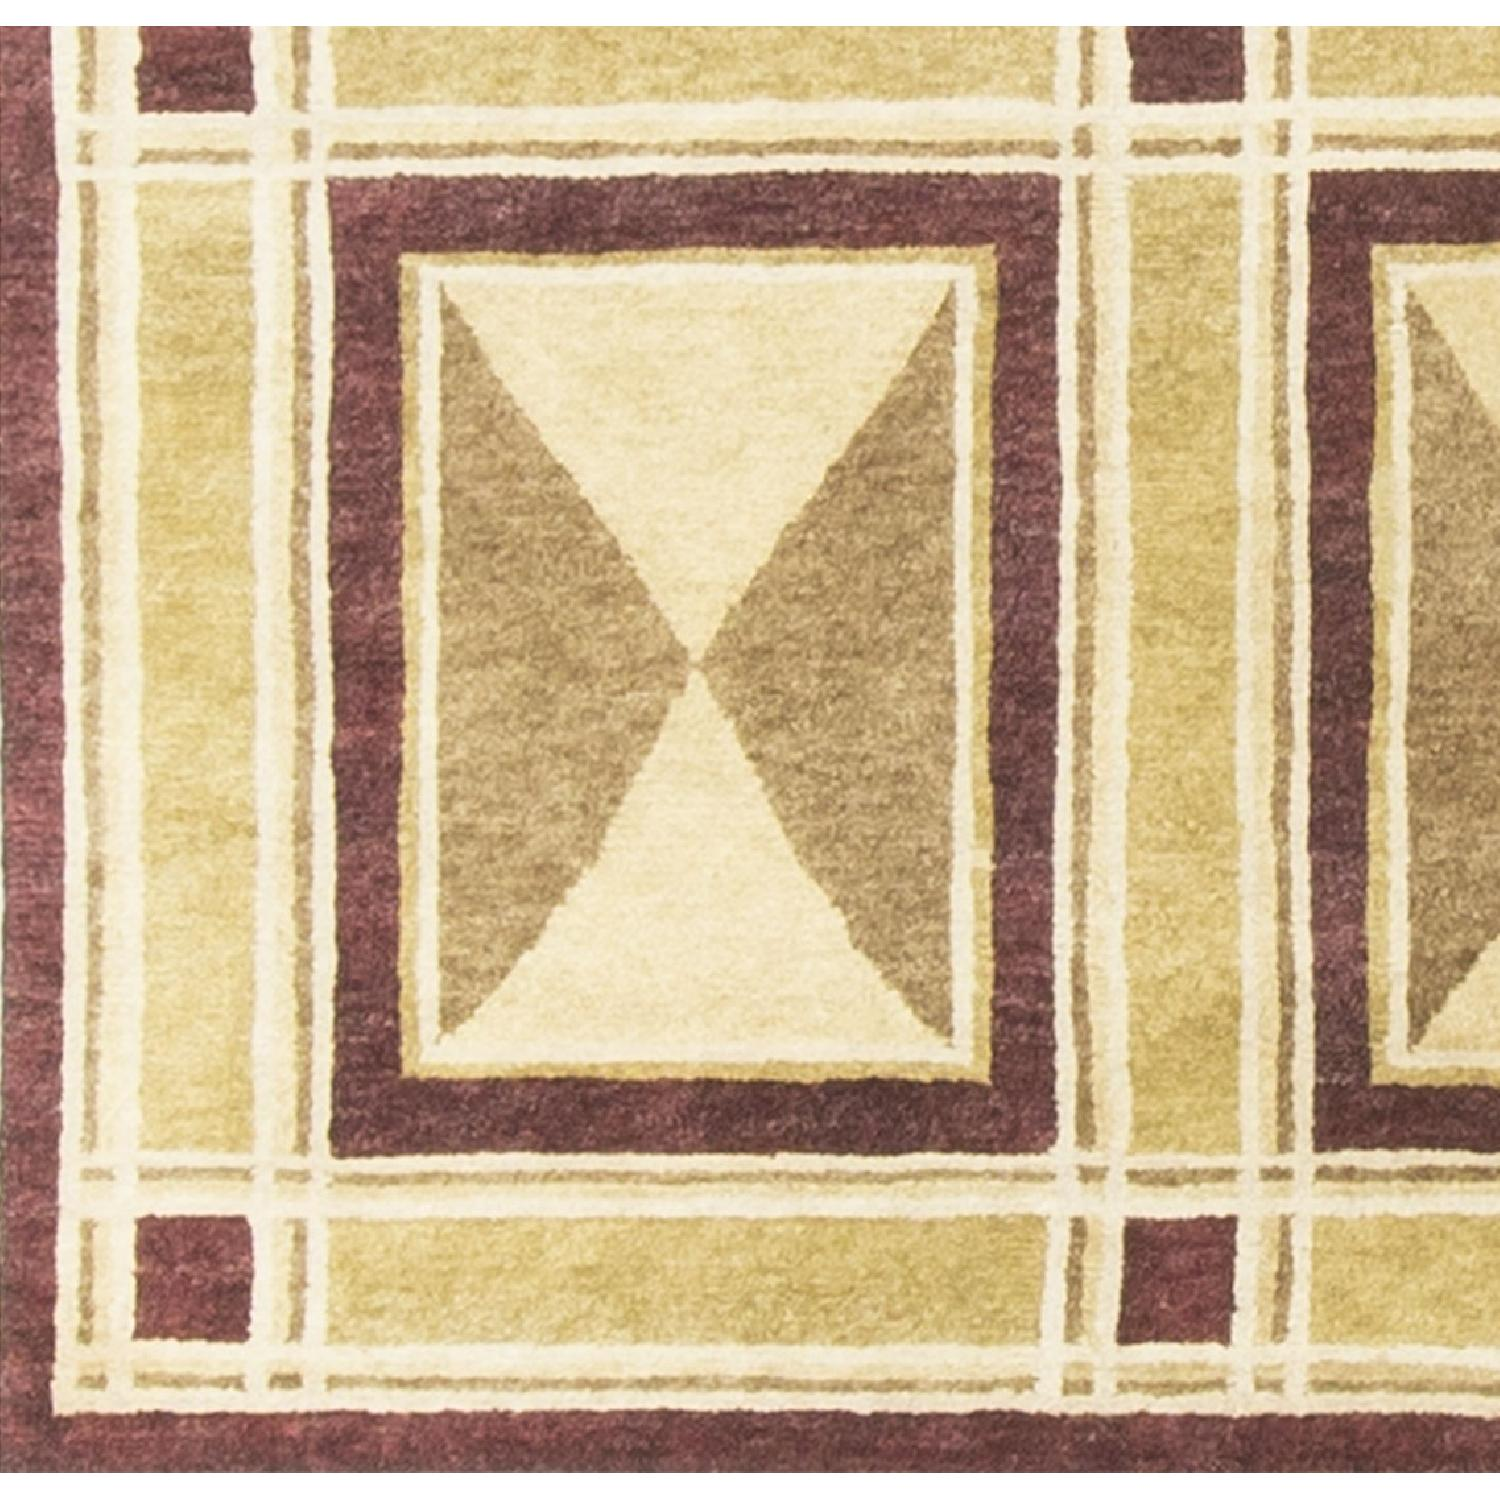 Modern Contemporary Hand Knotted Wool Rug in Beige/Red - image-3